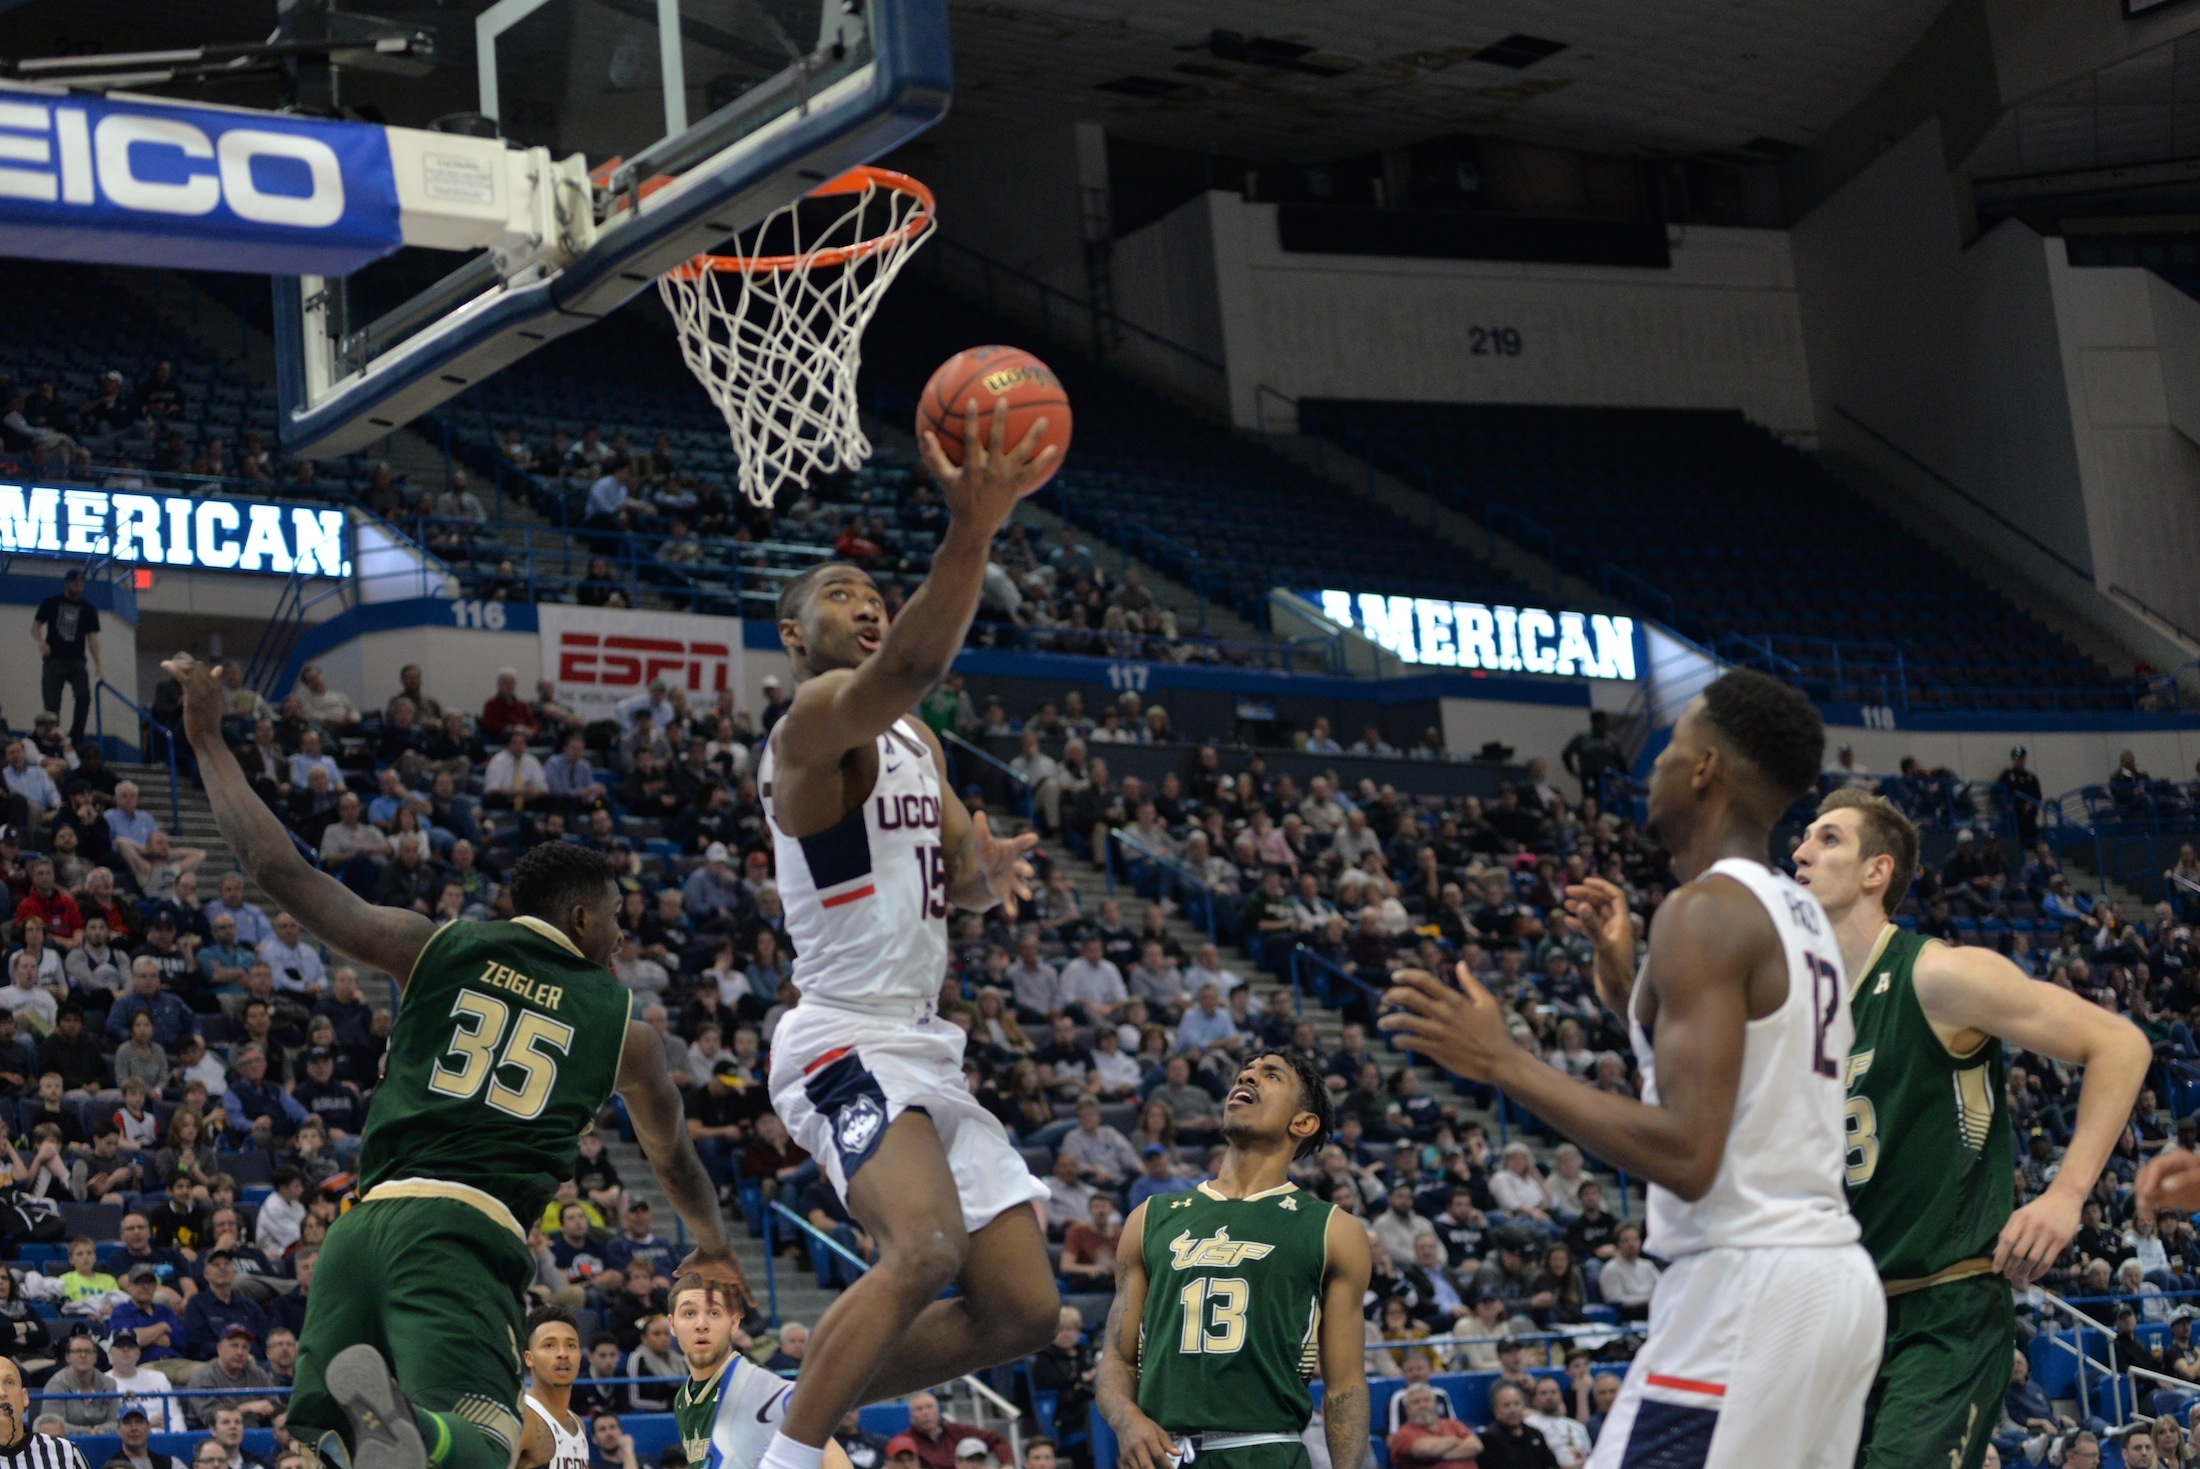 Men's Basketball: UConn vs USF